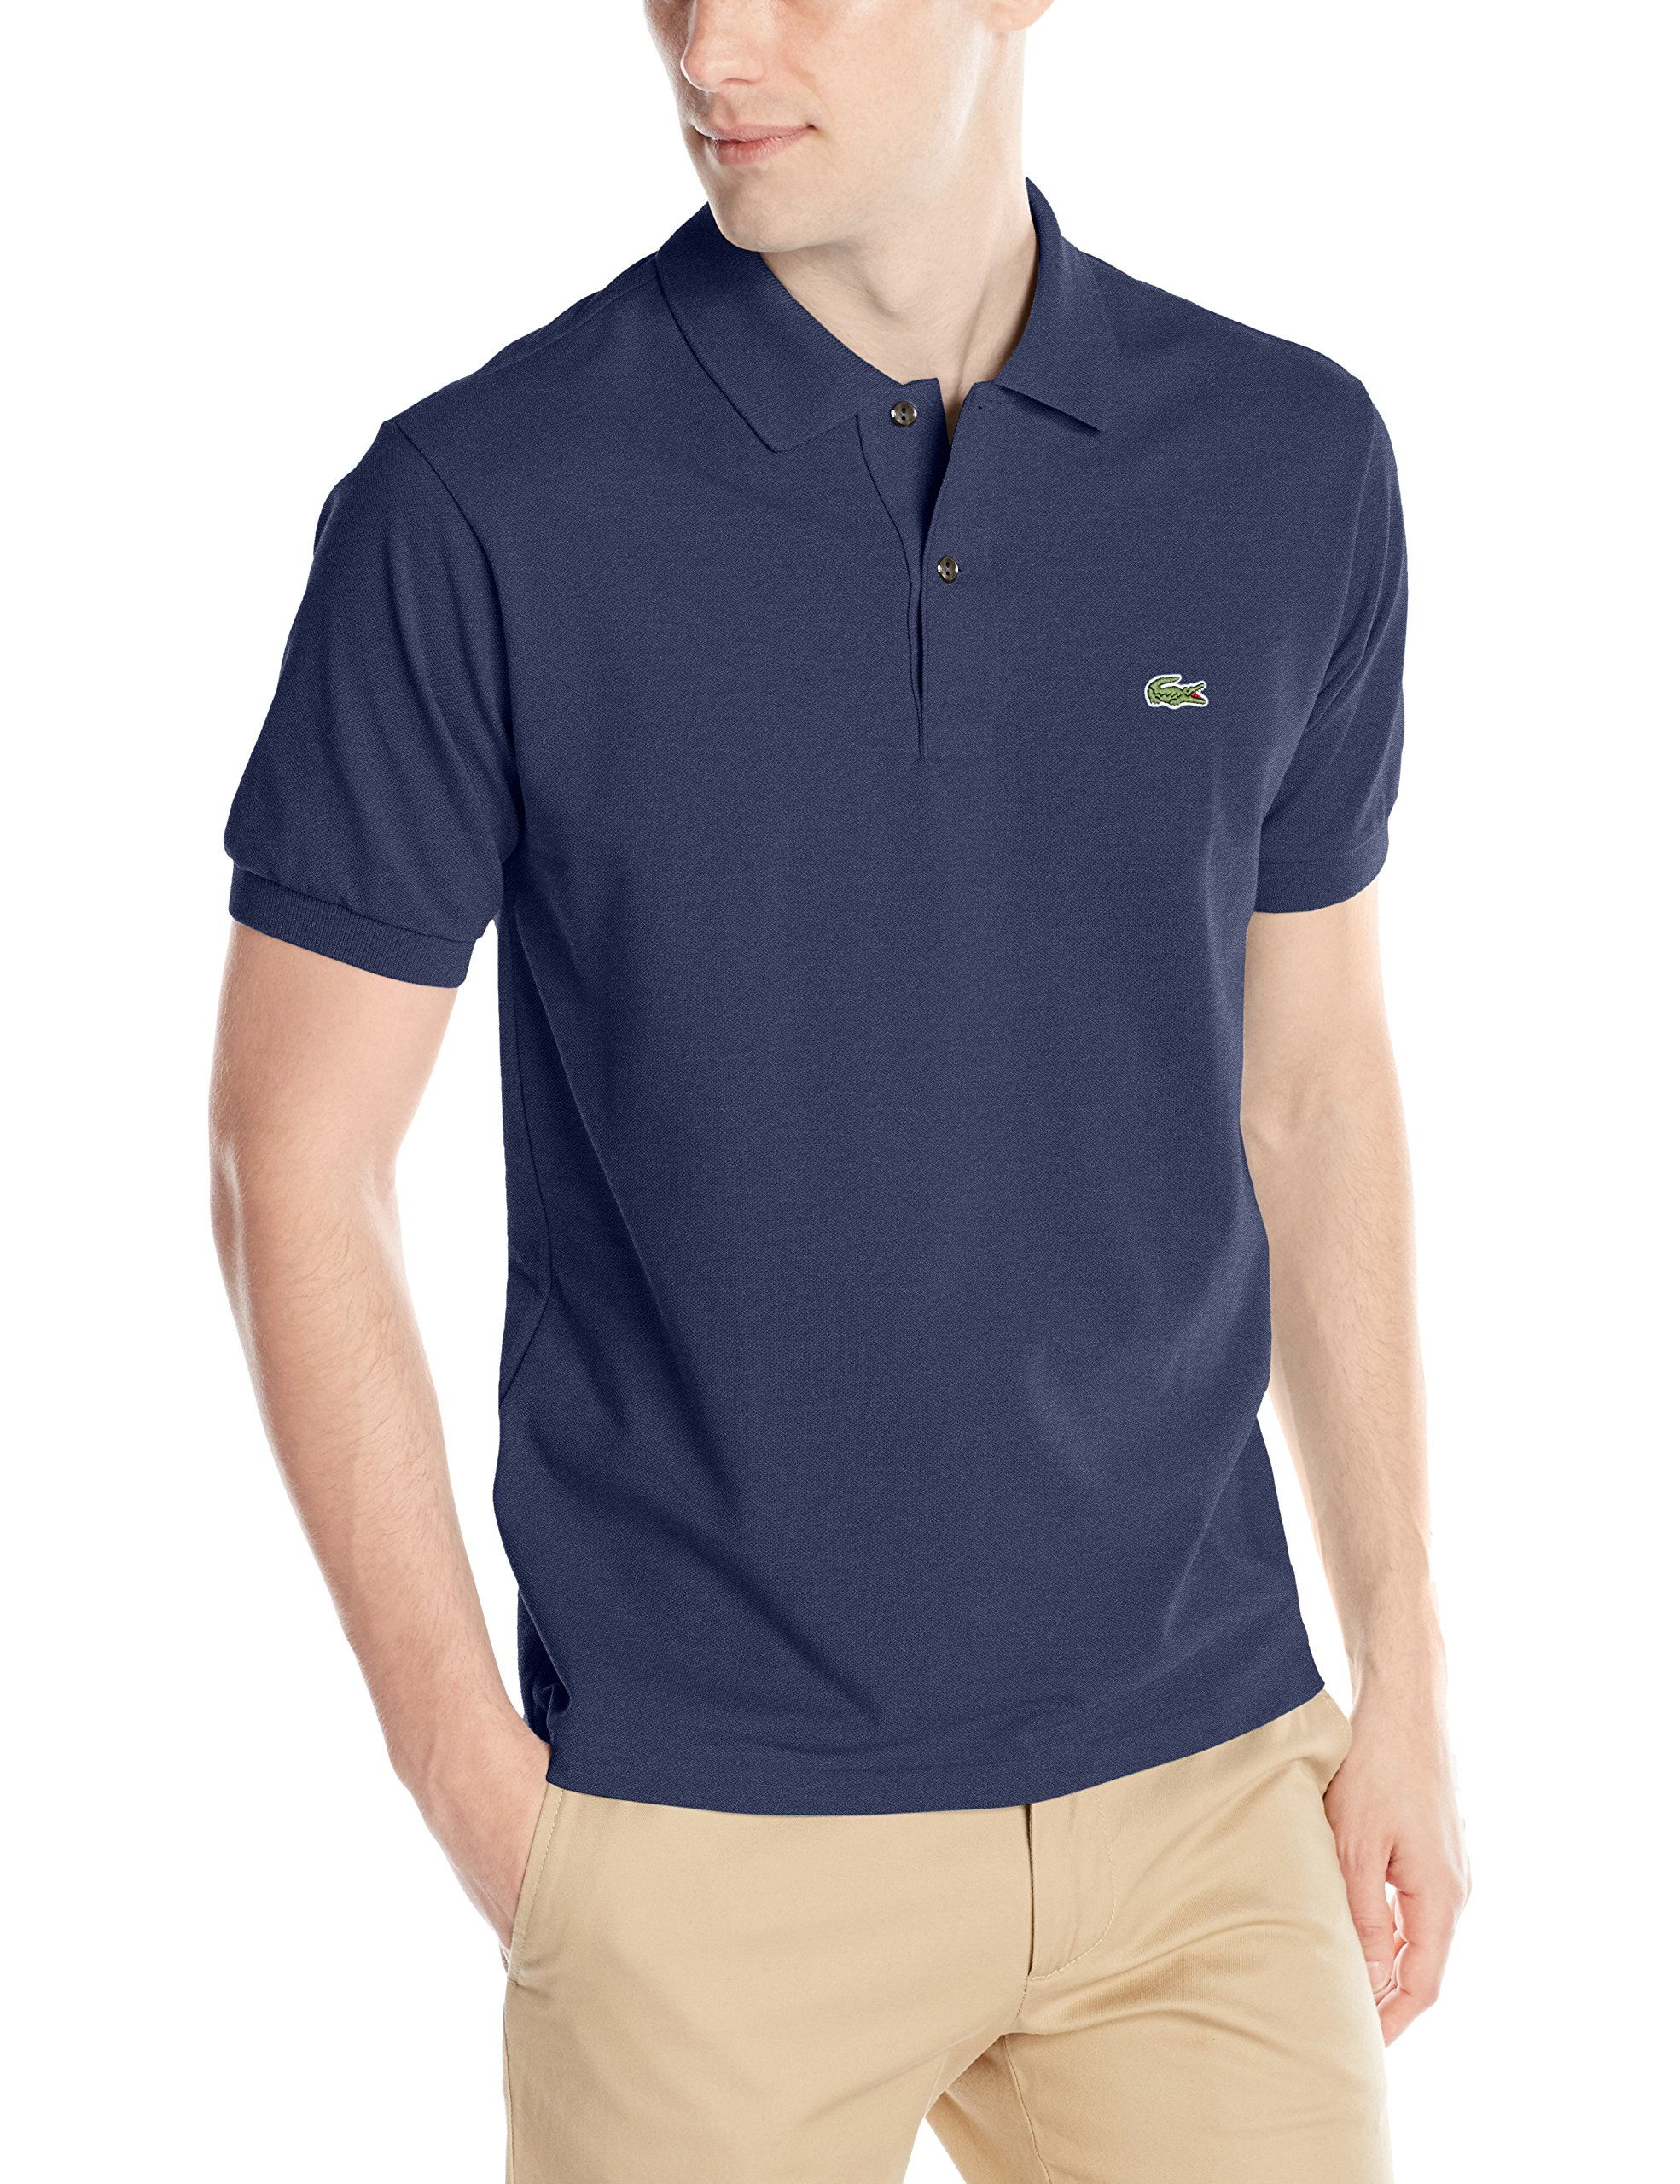 226566b739 Galleon - Lacoste Men's Short Sleeve Classic Chine Fabric L.12.64 Original  Fit Polo Shirt, Dark Indigo Blue Chine, 4